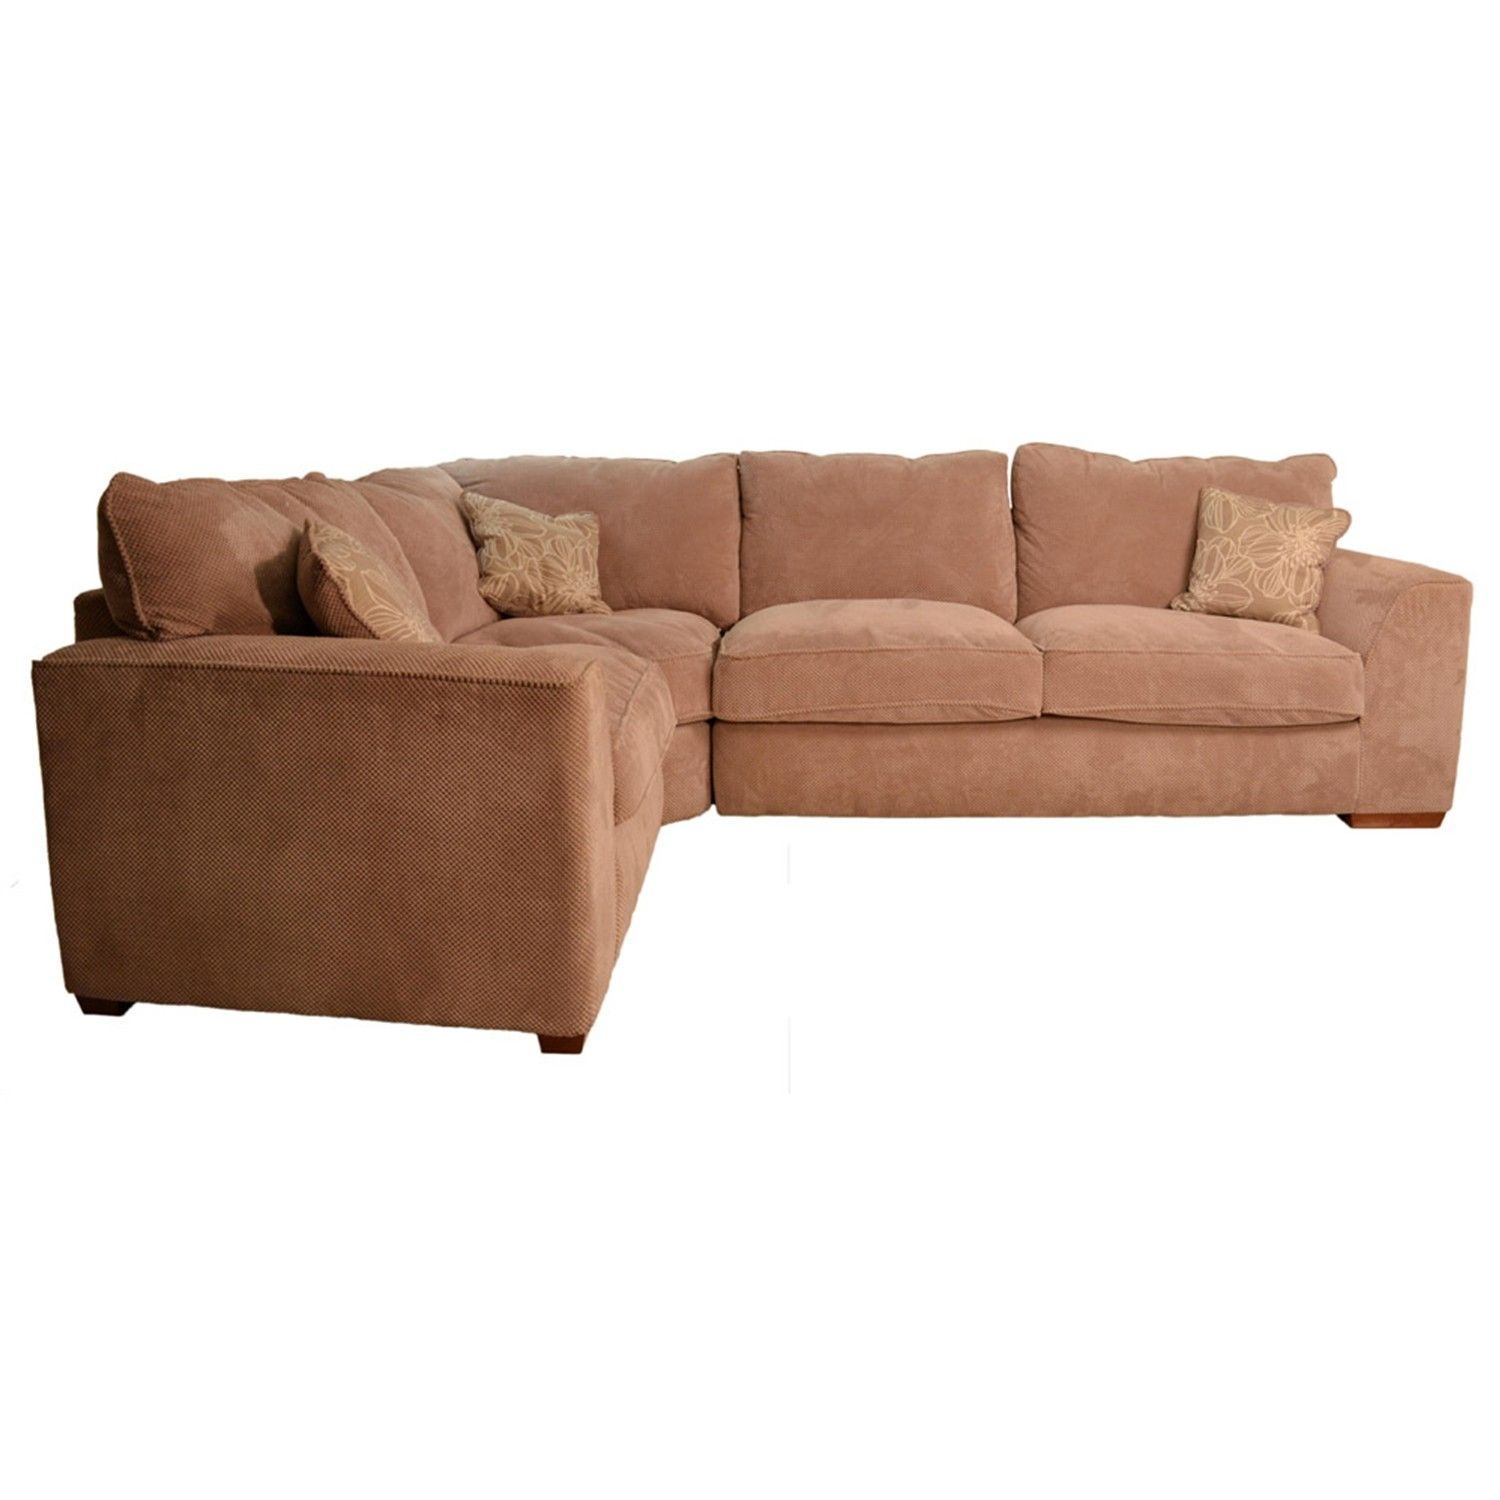 Alpha Sofa Group Casa Alpha Corner Group Leekes New House Project Home Decor